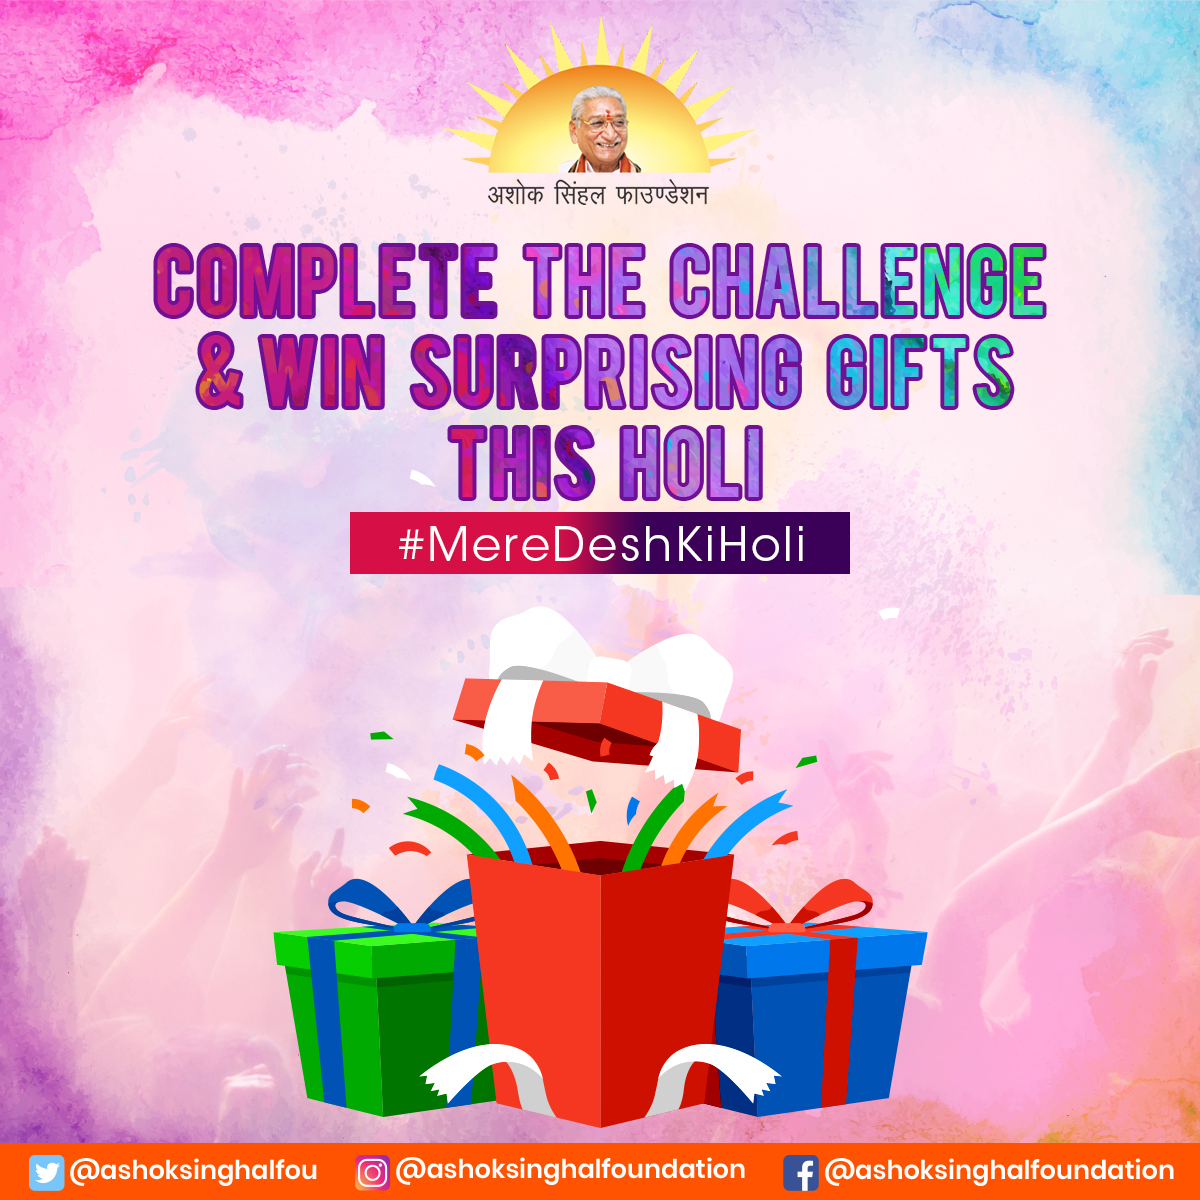 Exciting Challenge With Surprising Gifts are awaiting for you all.  Keep Calm & Stay Tuned With Us  To Know More.   #MereDeshKiHoli #ChallengeAlert #ContestAlert #HoliChallenge #HoliContest #EmptyBucketHoli  #BuraNaManoHoliHai #ParticipateToWin #AshokSinghalFoundation